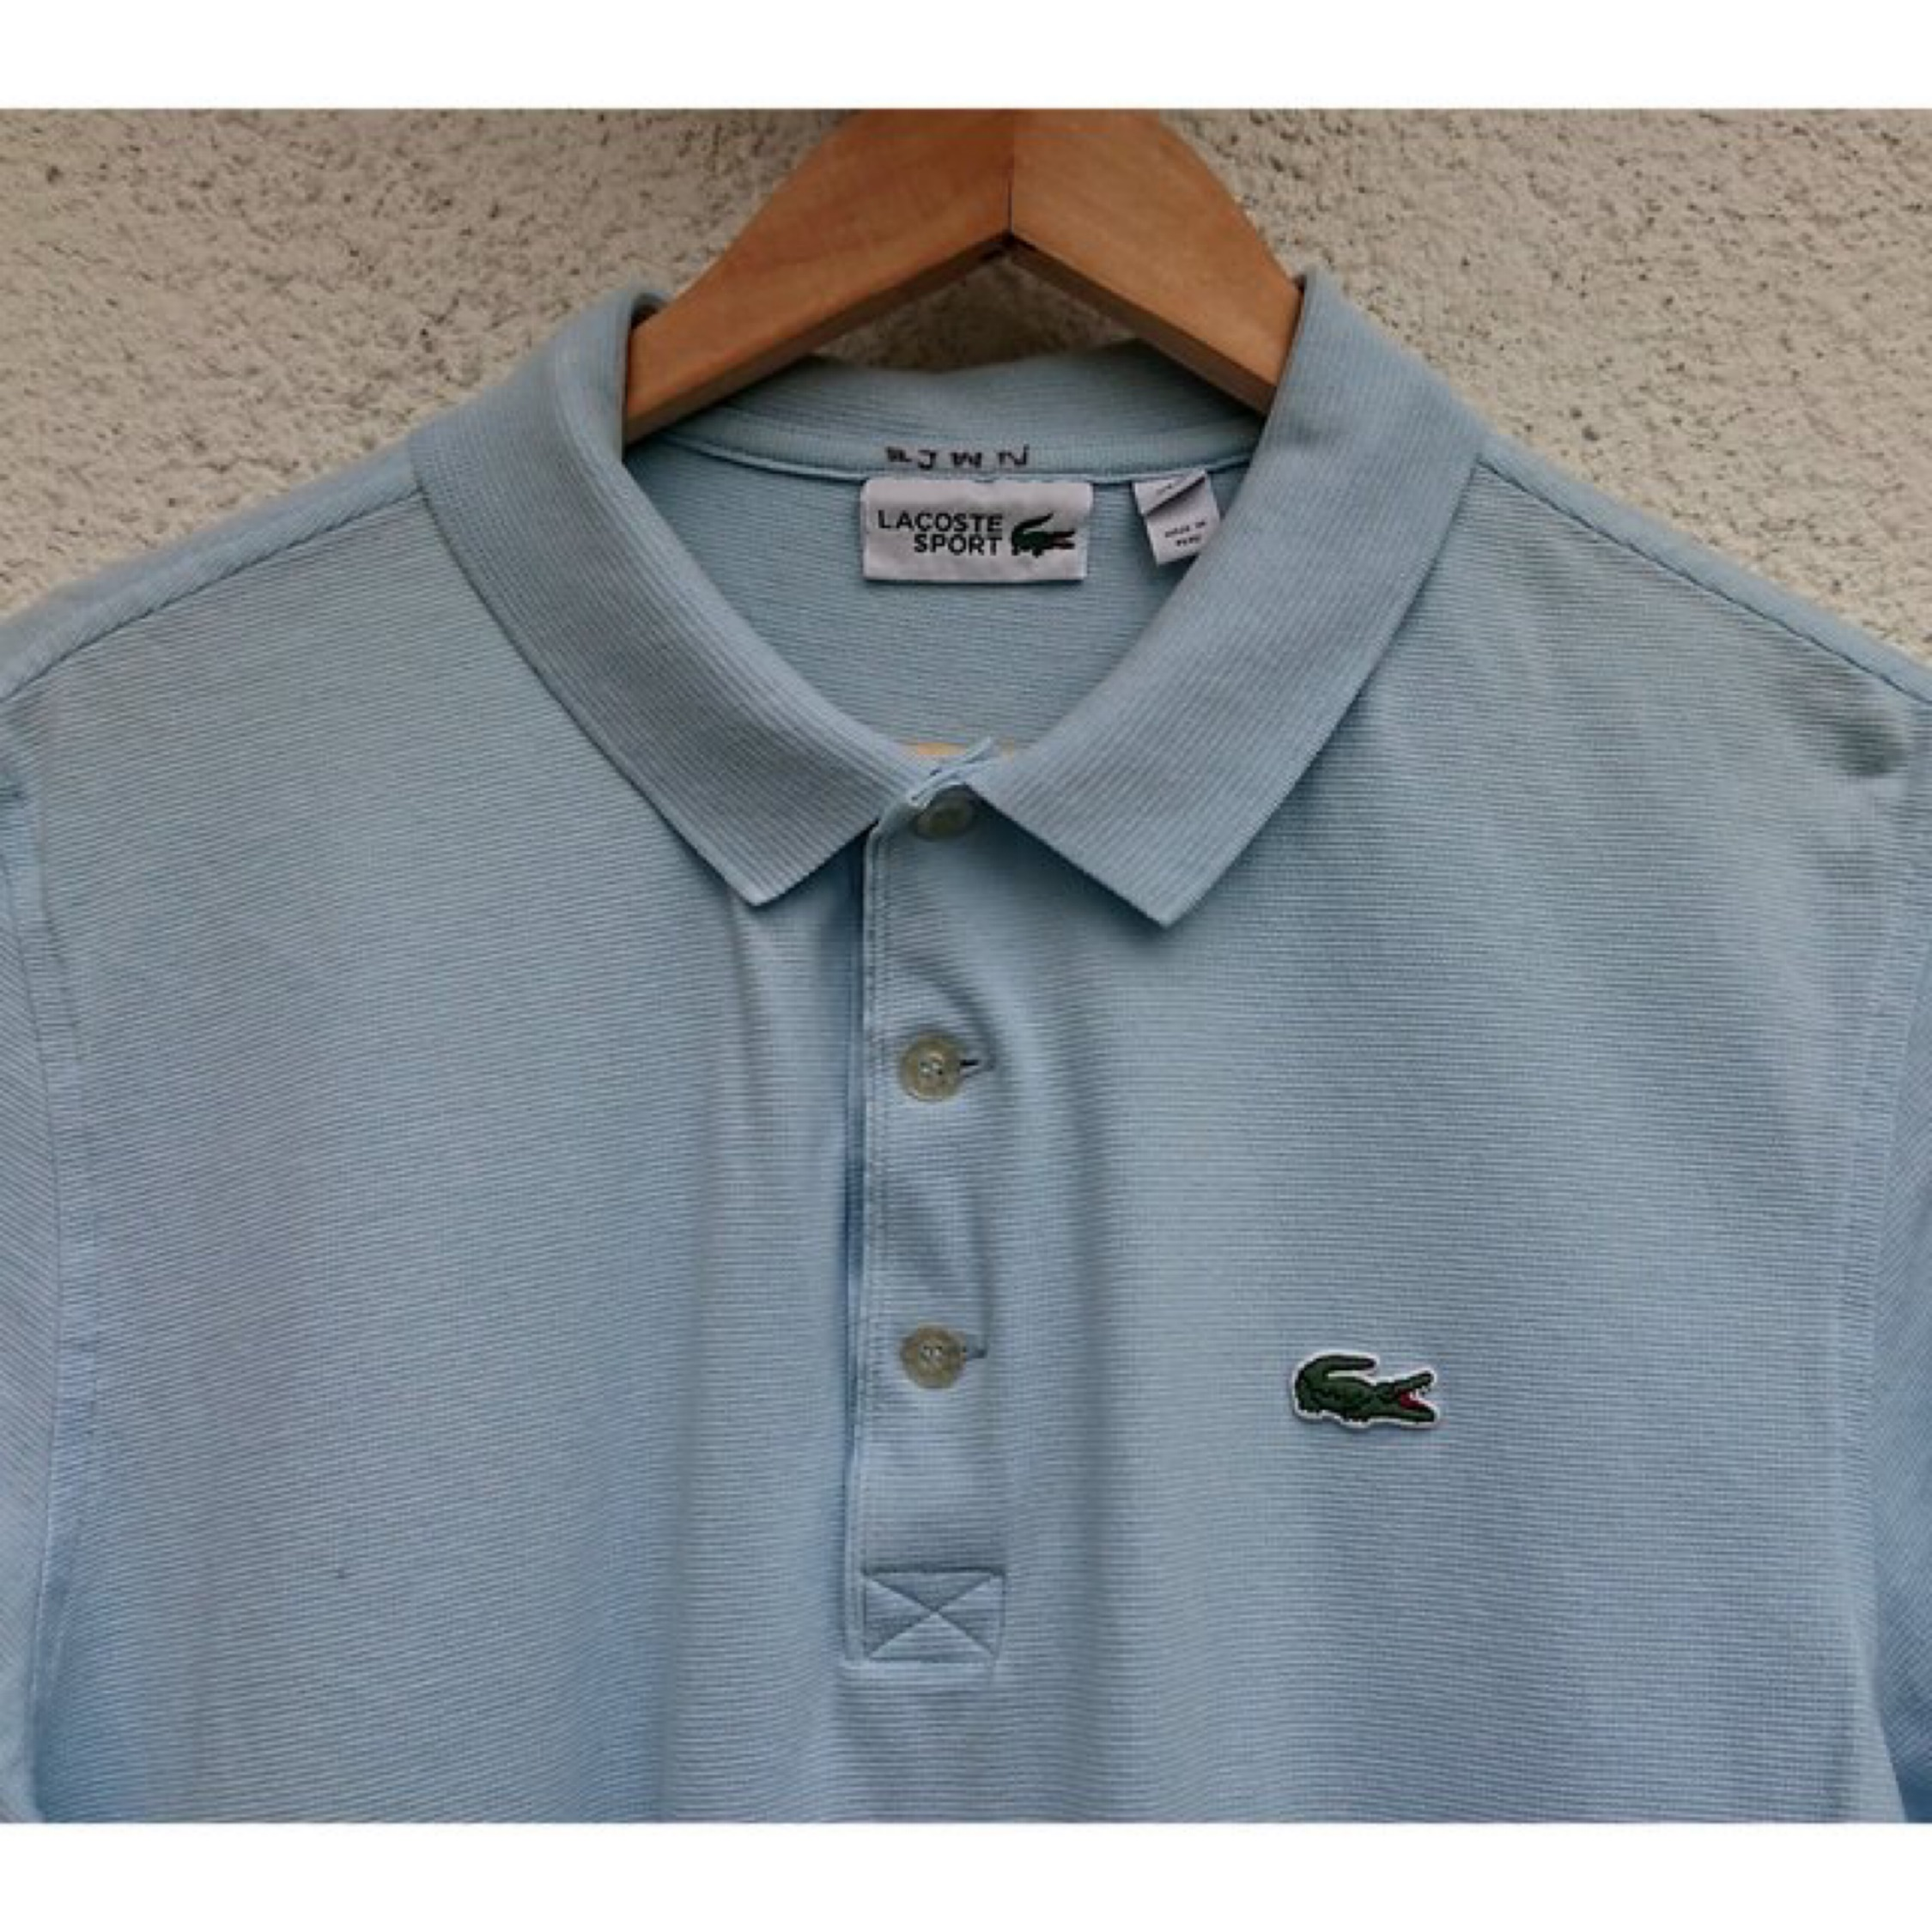 Vintage Lacoste Polo Shirt, Light Blue